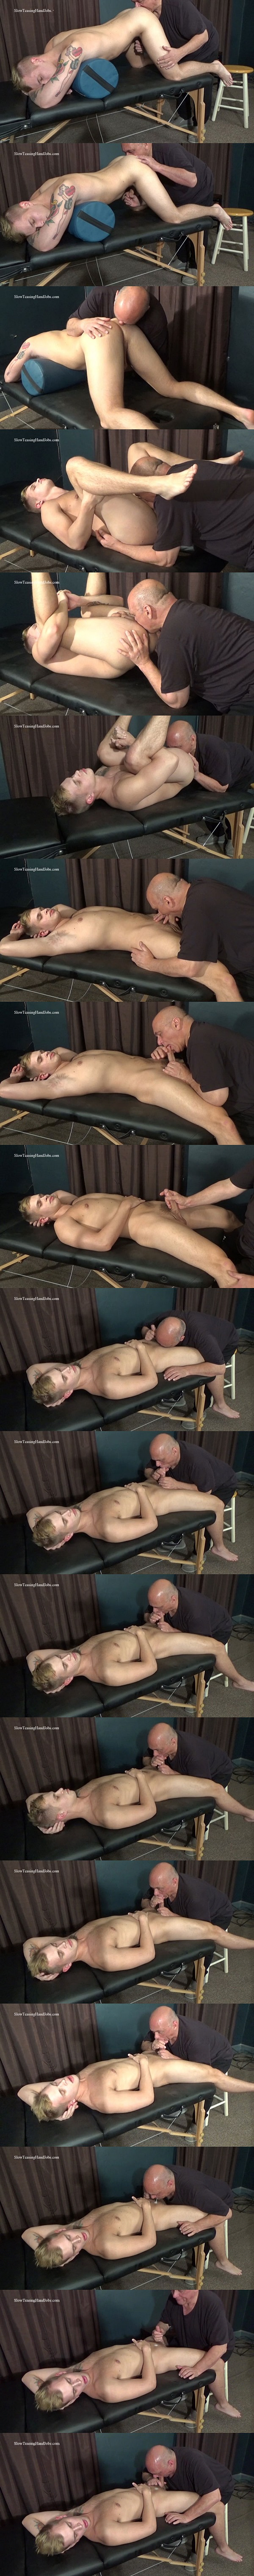 Slowteasinghandjobs - master Rich rims fit straight dude Hunter (aka Dustin Cross)'s tight virgin ass and sucks his cock until Hunter cums in Rich's mouth 02